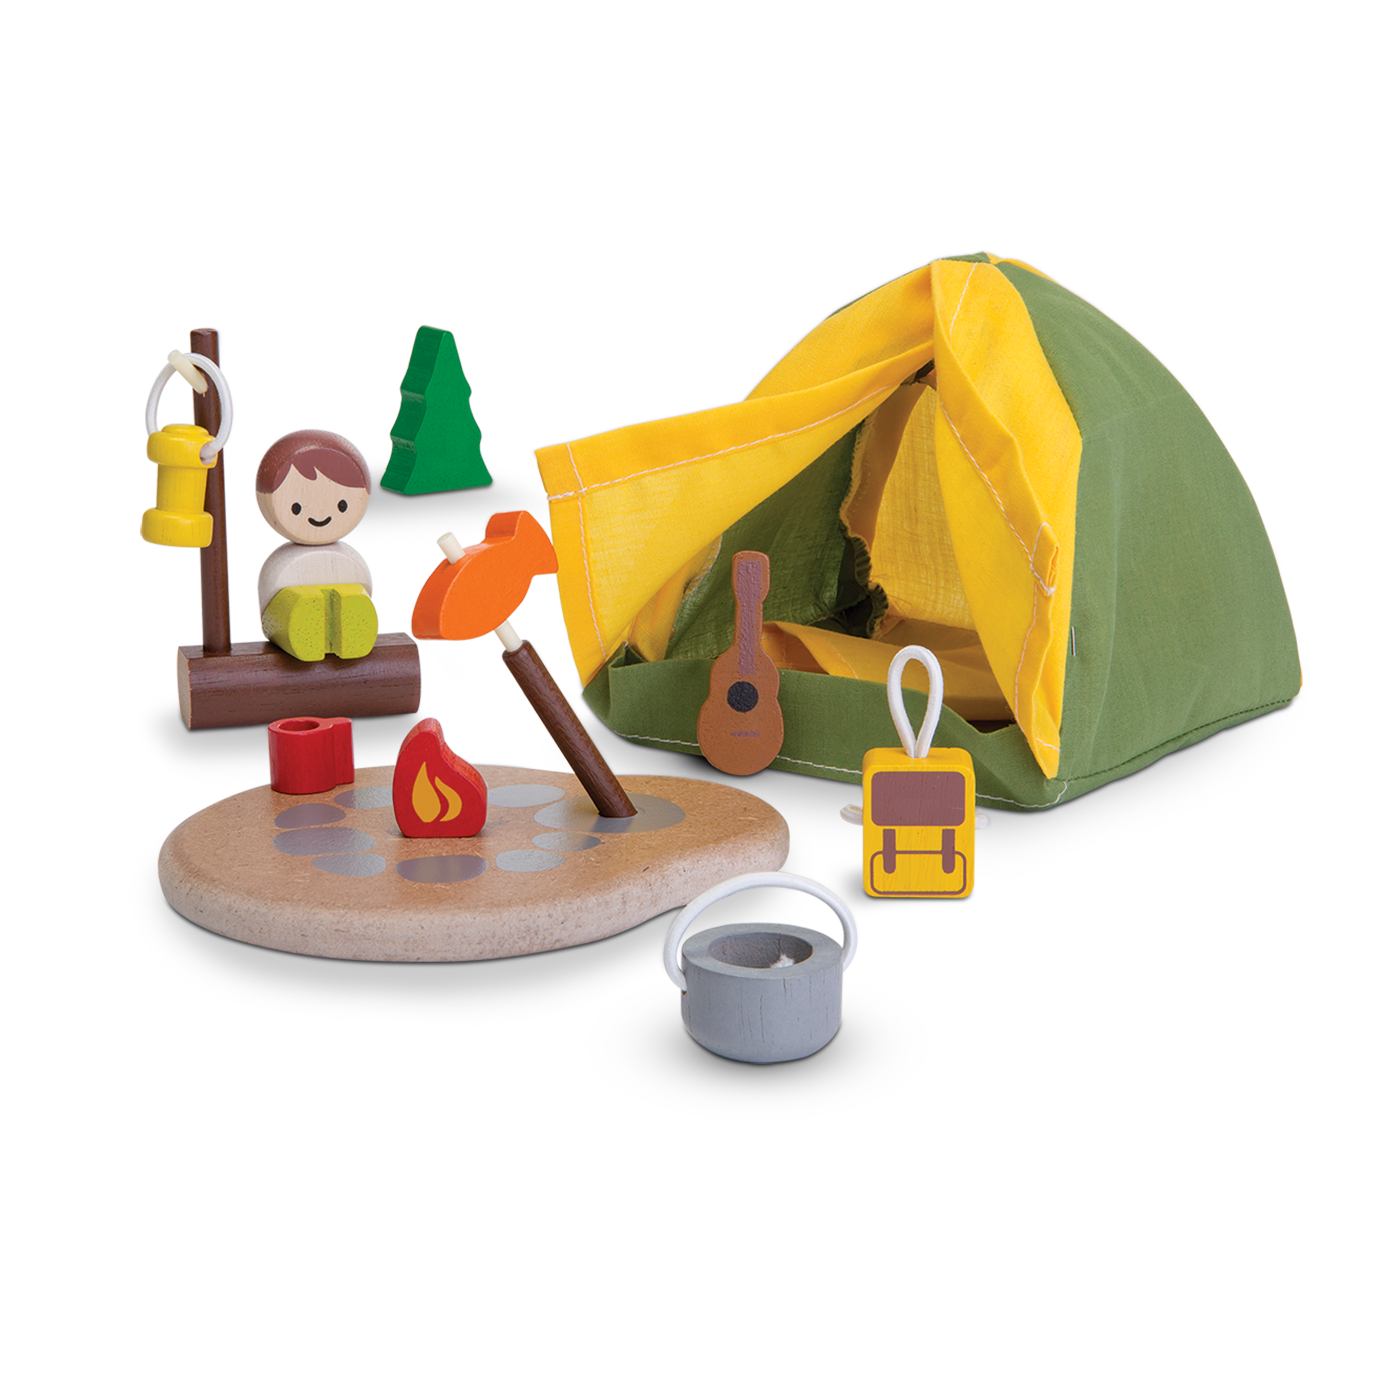 Wooden Toys Camping Set by Plan Toys